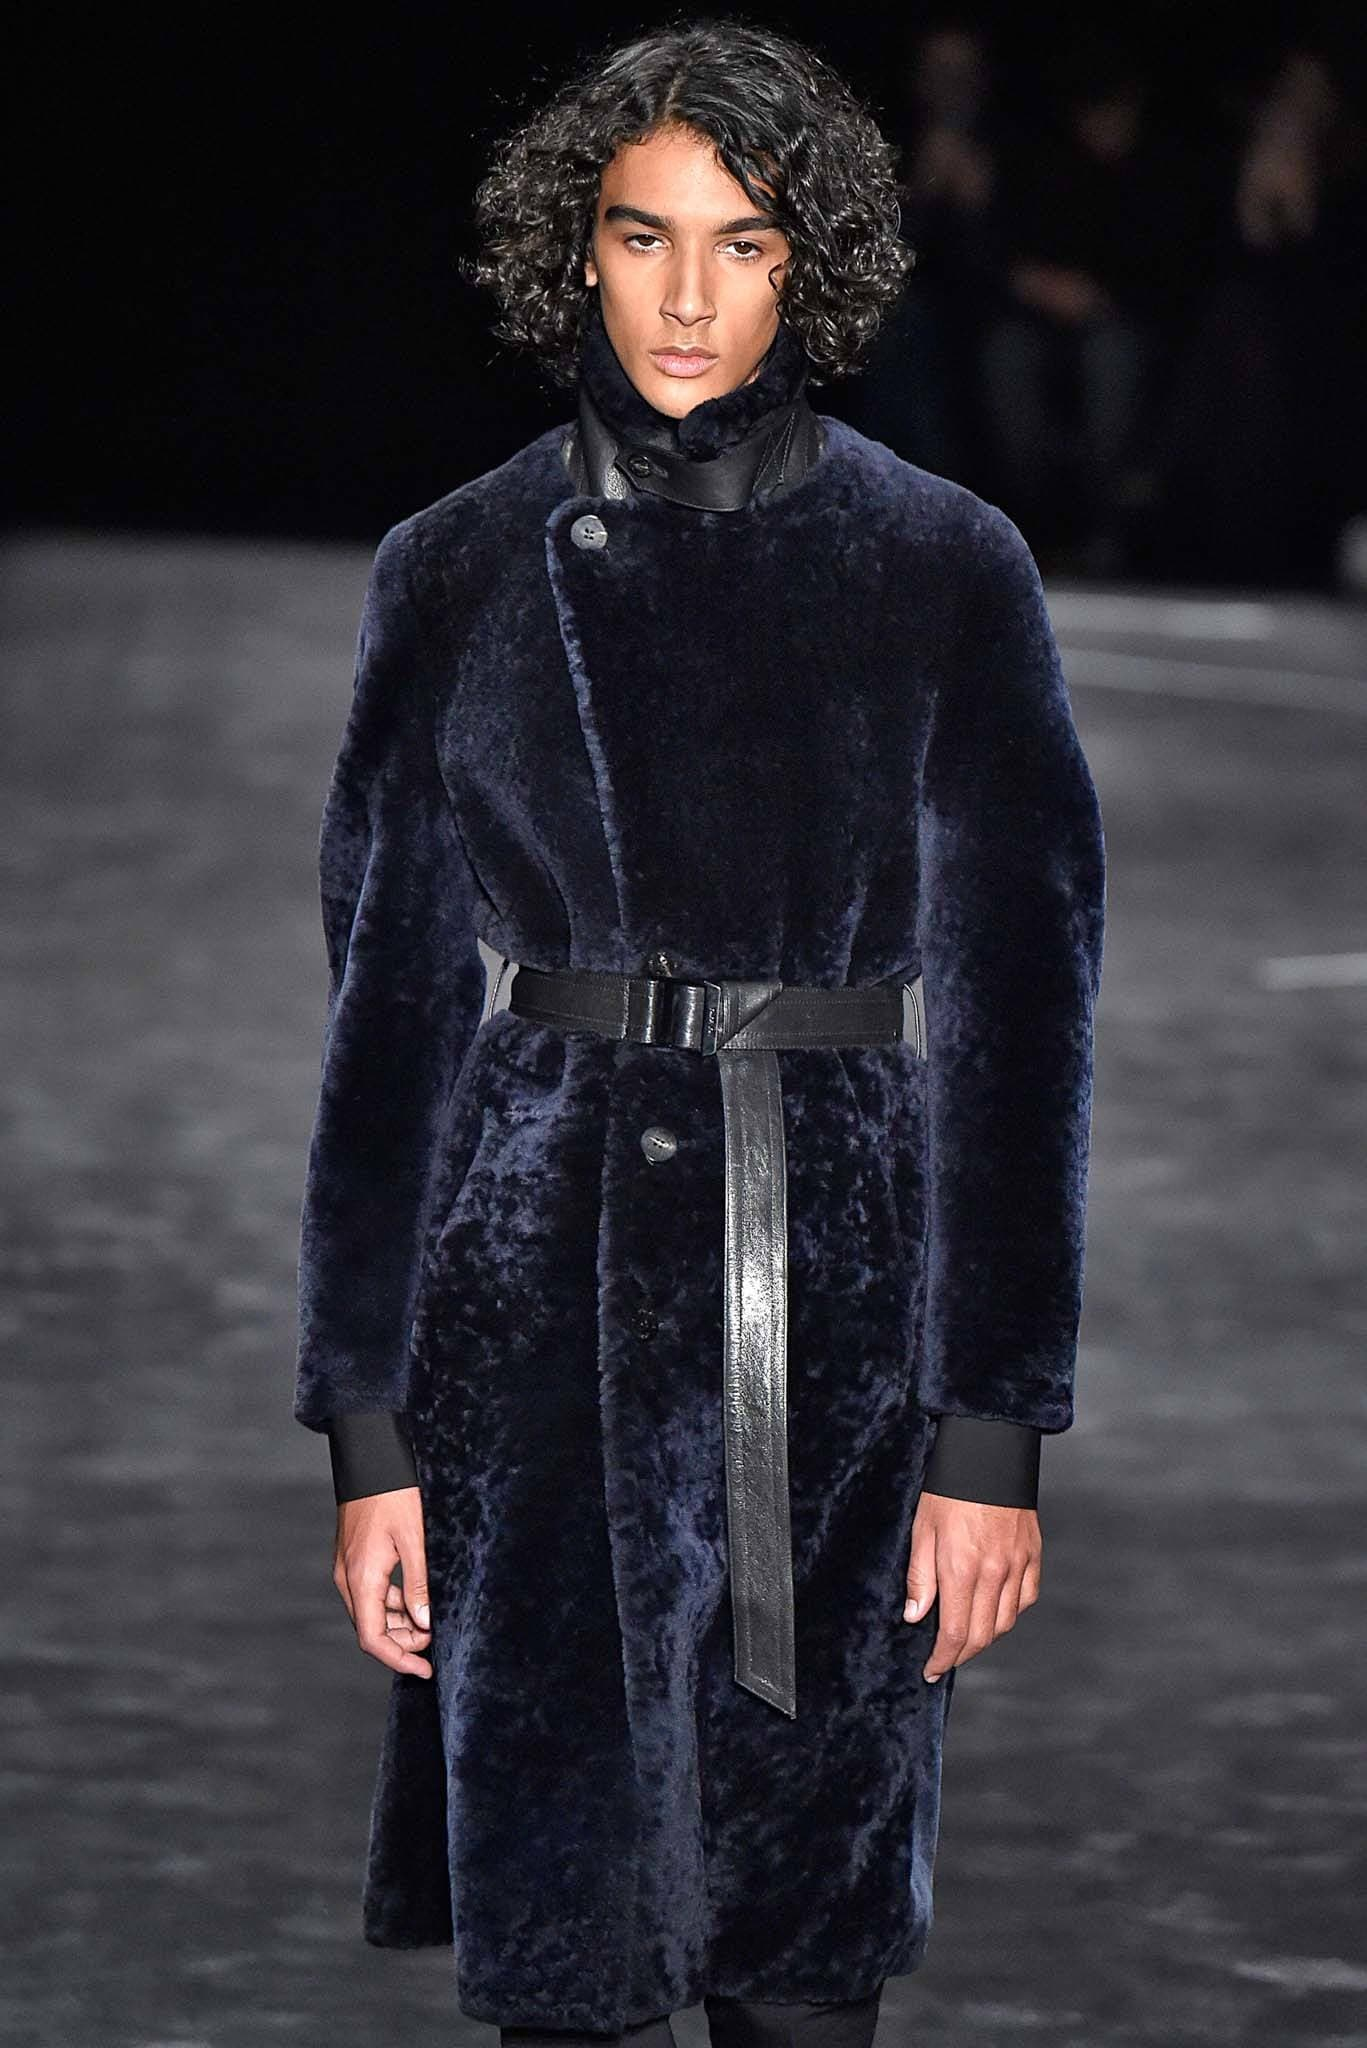 Milan Fashion Week Men's AW18: Male model on catwalk with curly brown hair